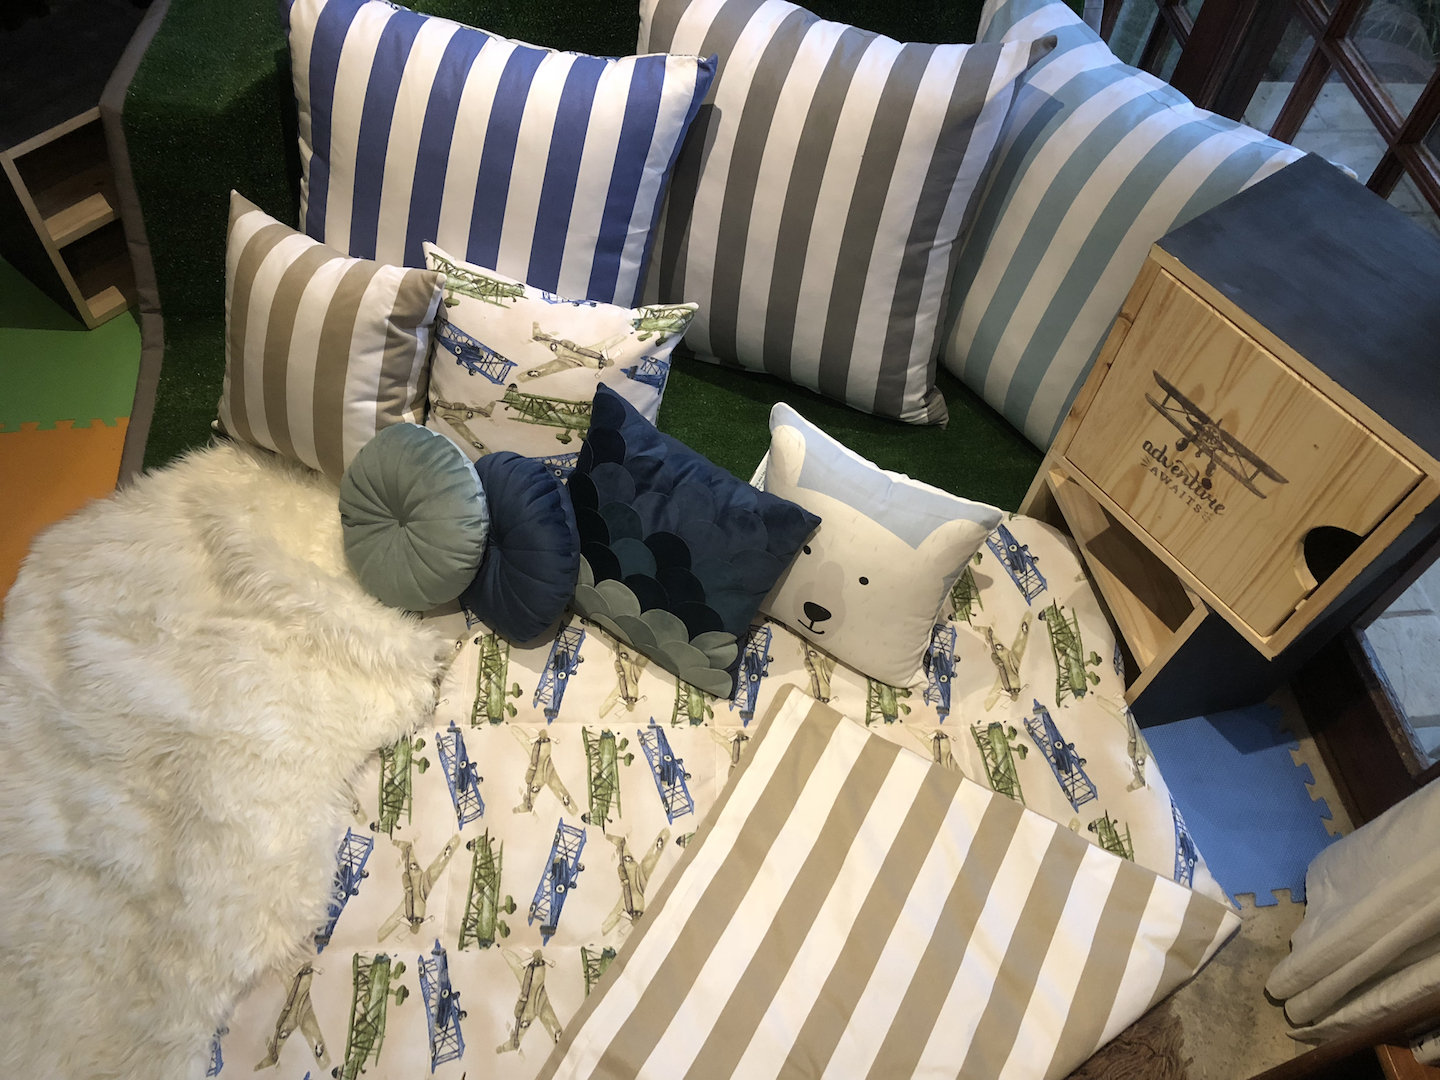 Adventure Decor In A Box Areap View of Blue and turquoise soft furnishings, turf and wood handcrafted products by Tassels & Tigers Interiors and online decor store in Johannesburb.jpg